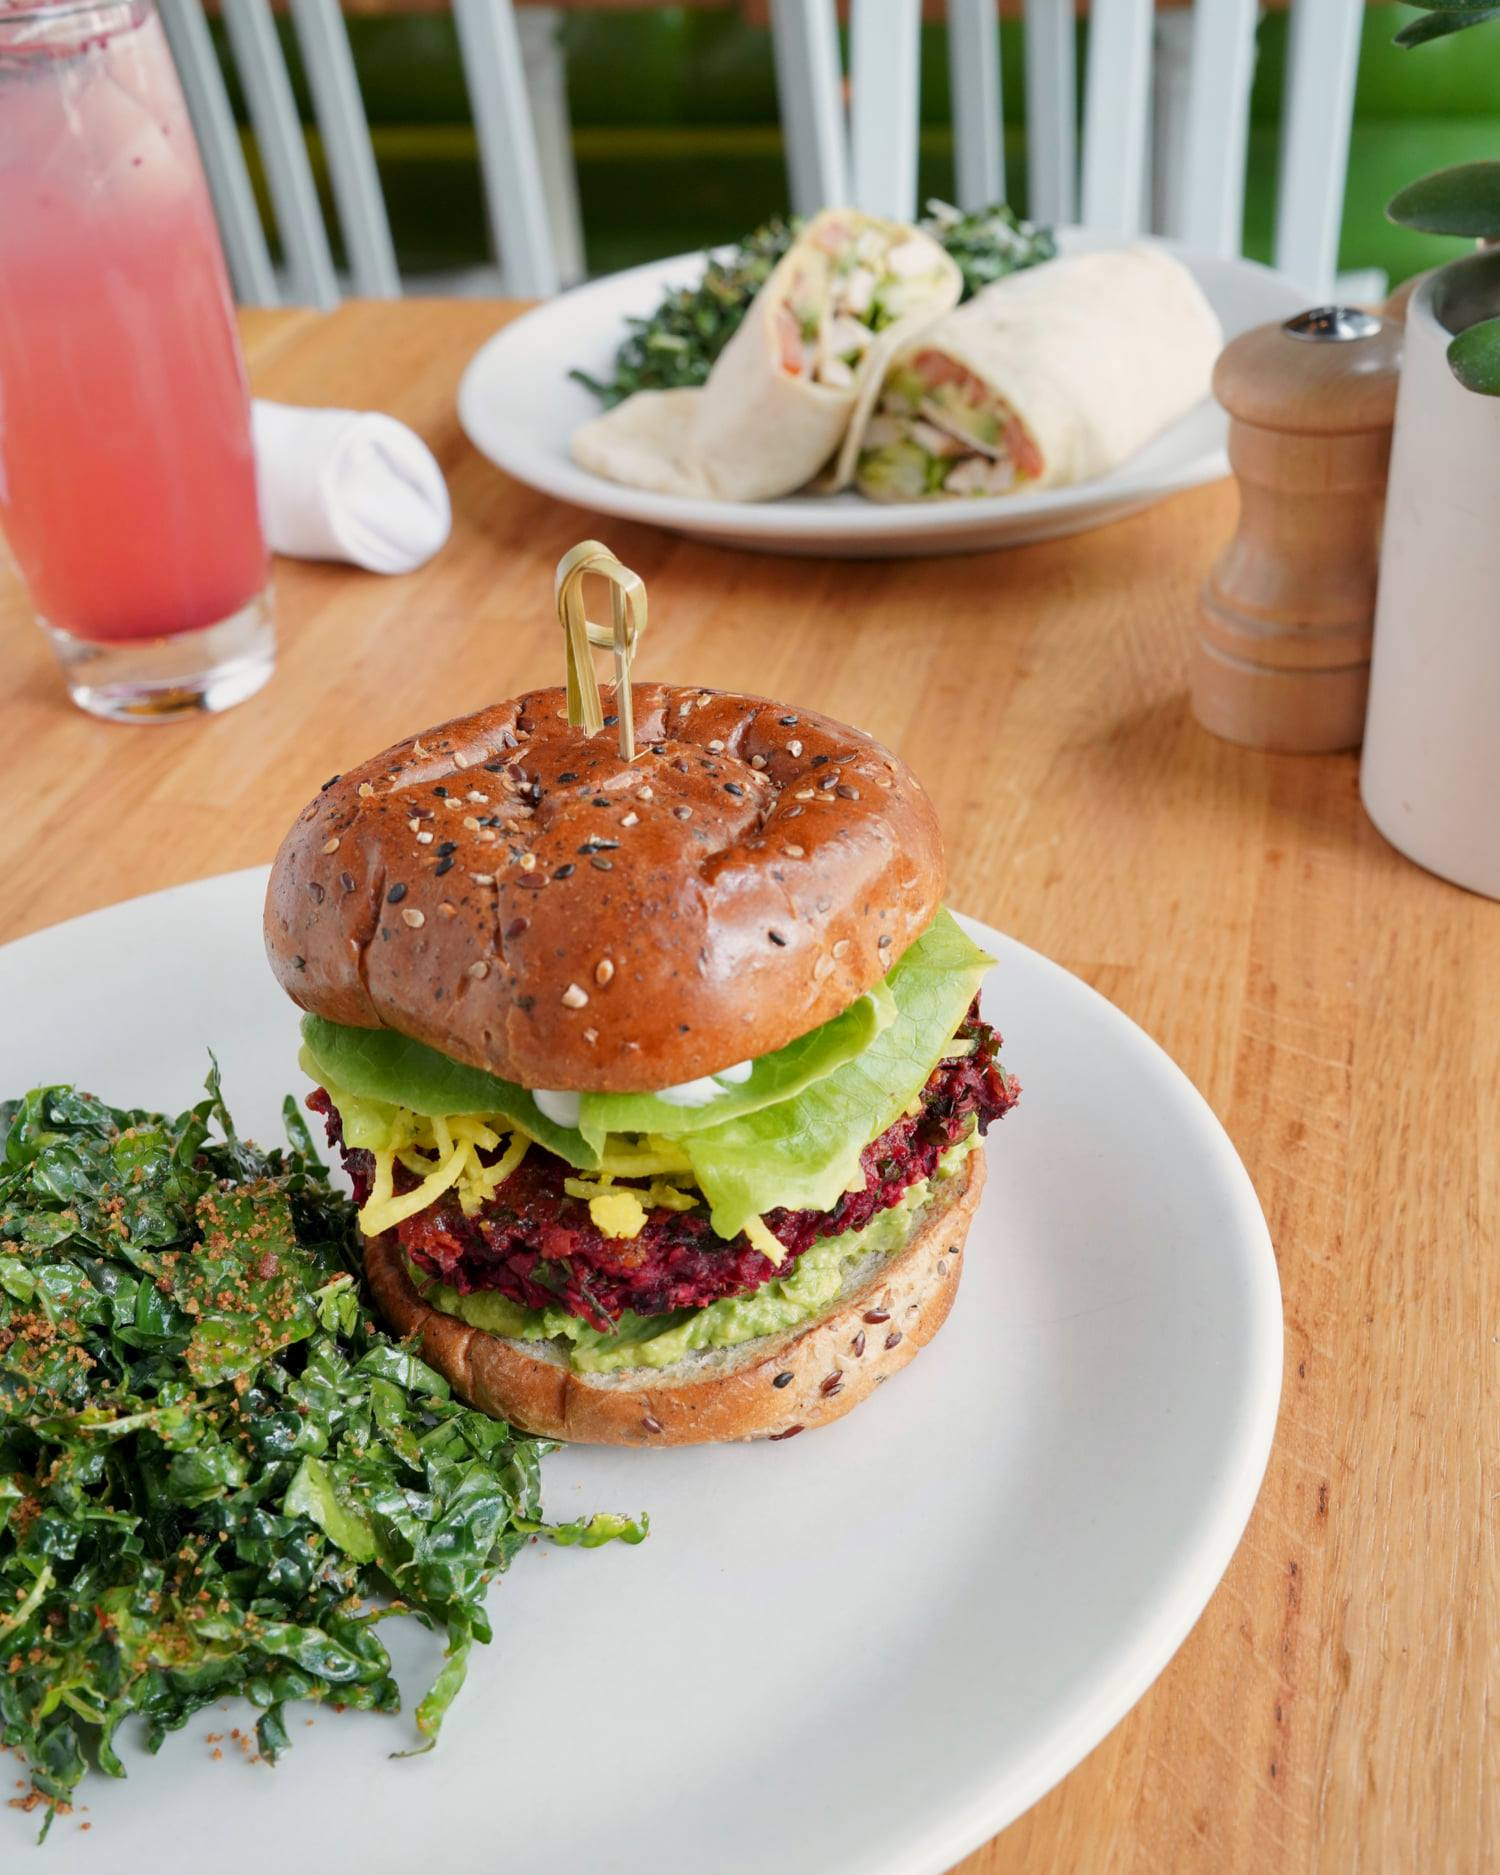 A burger made with beets